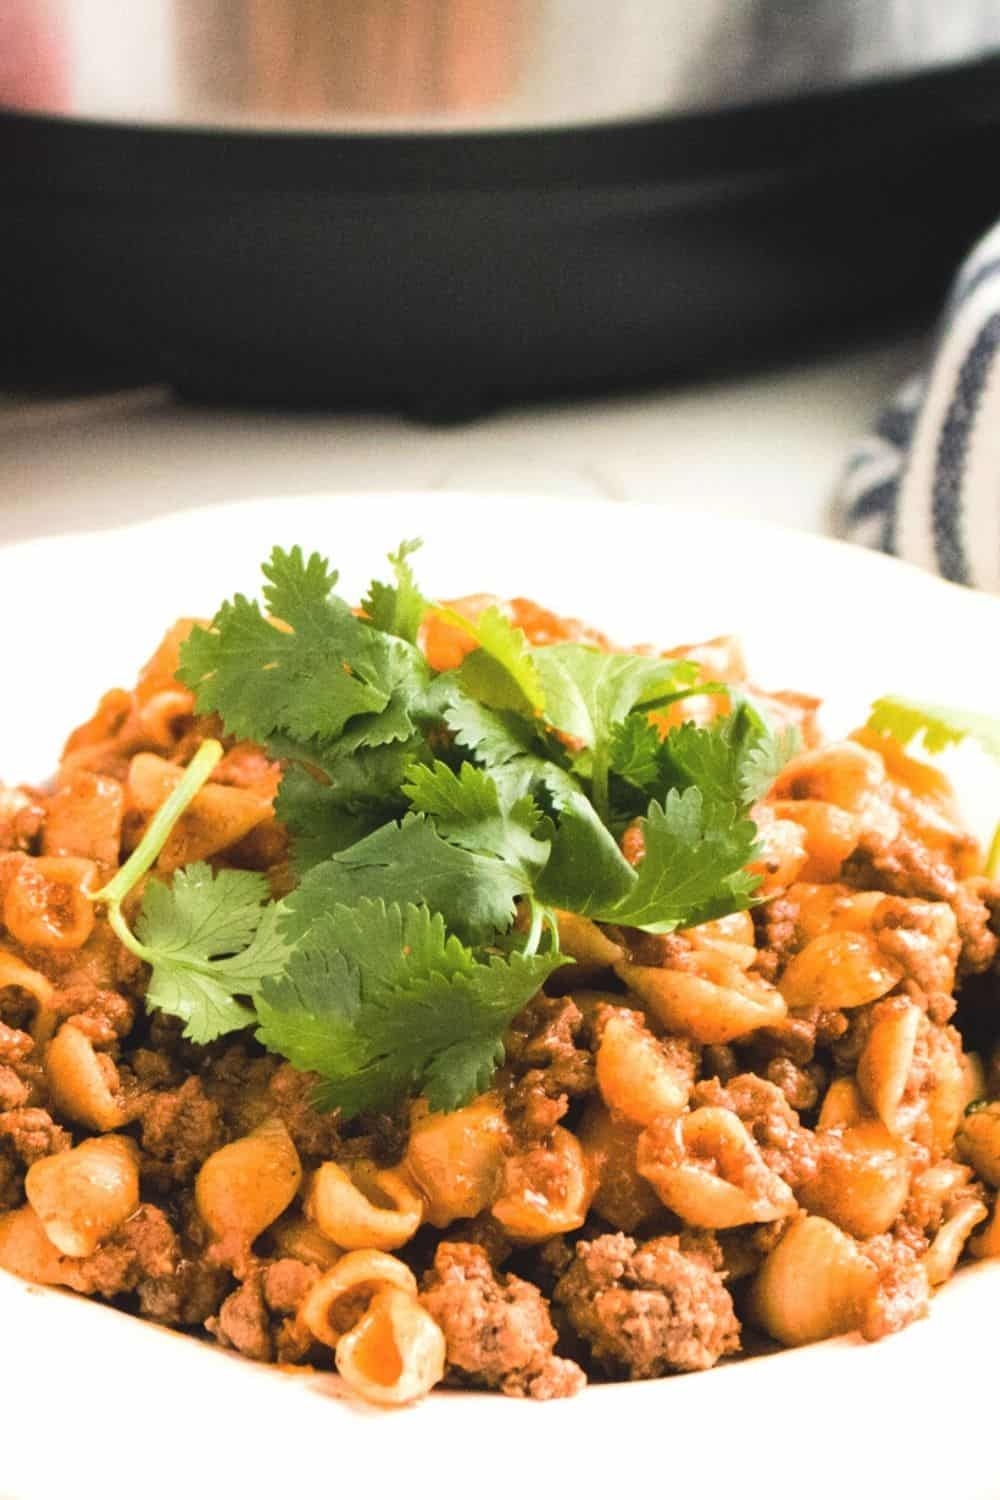 Learn to create this Instant Pot Puerto Rican Cheesy Taco Pasta recipe your family is going to love. Super simple to make and super cheesy! via @mystayathome